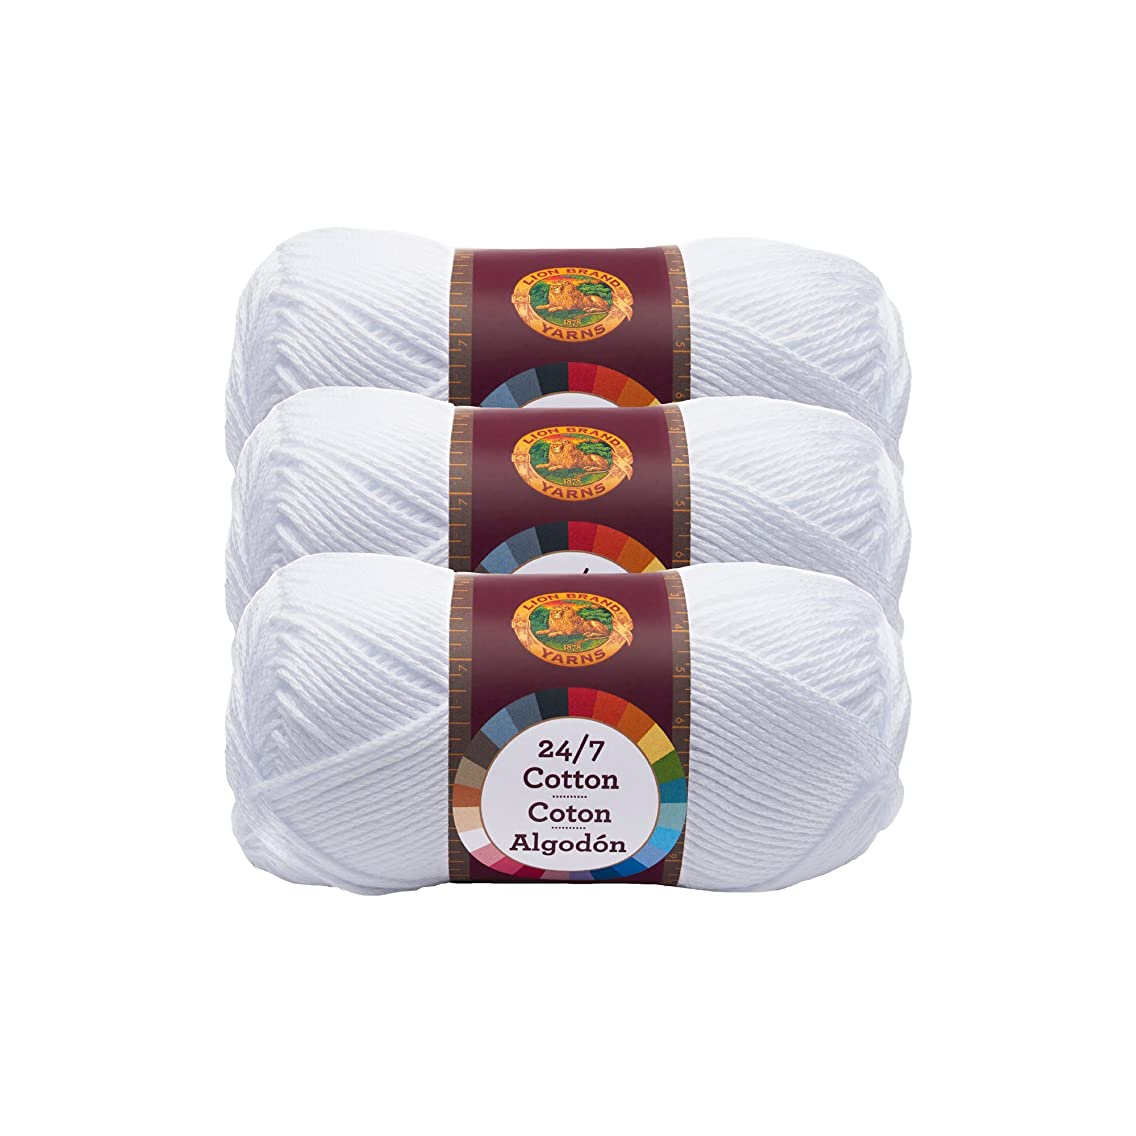 (3 Pack) Lion Brand Yarn 761-100 24-7 Cotton Yarn, White fmfuhvf25